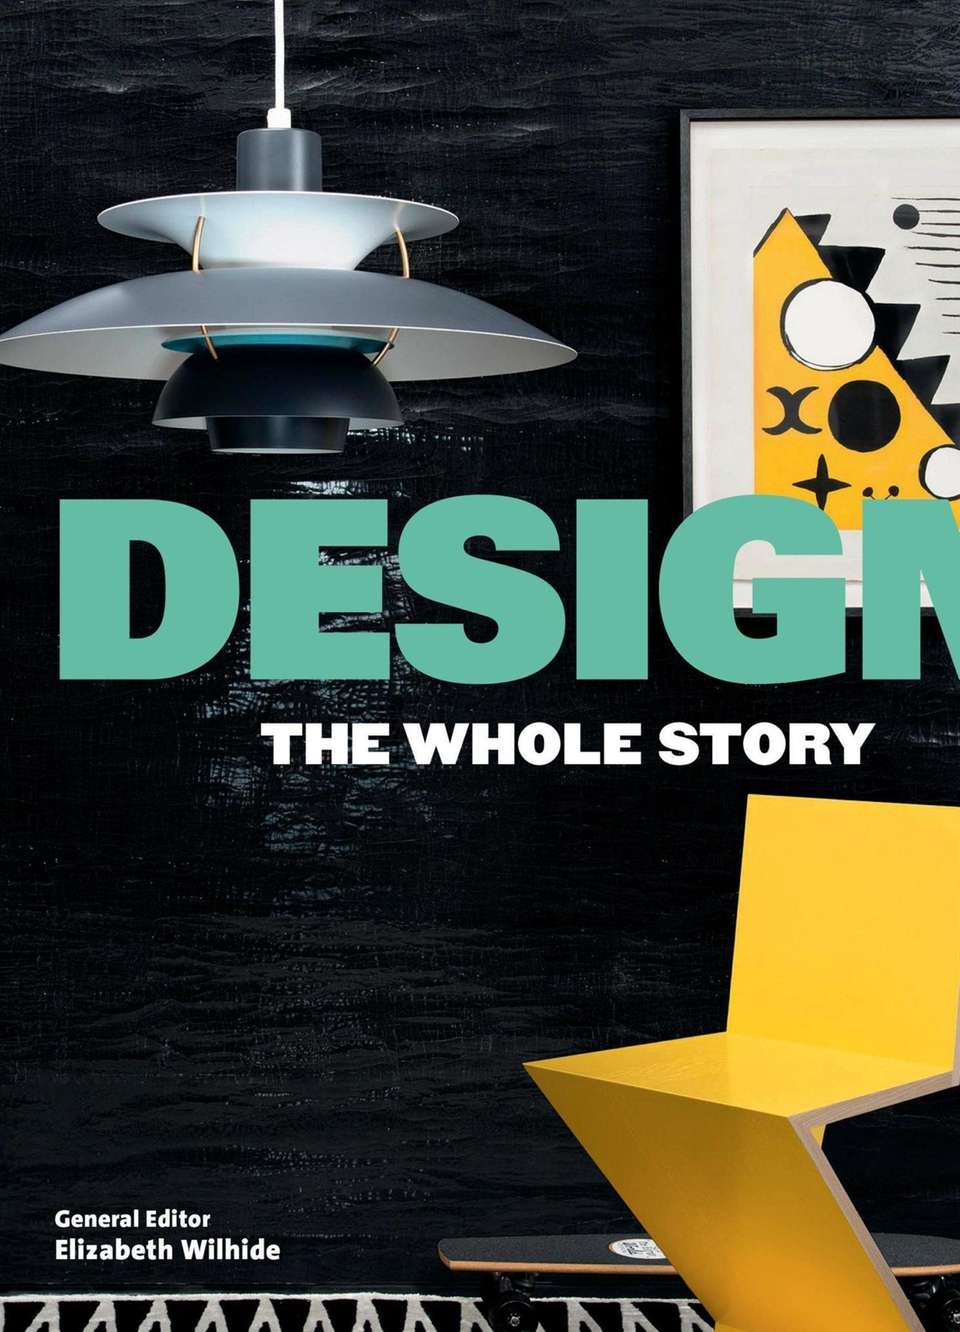 More than 300 years of design history and